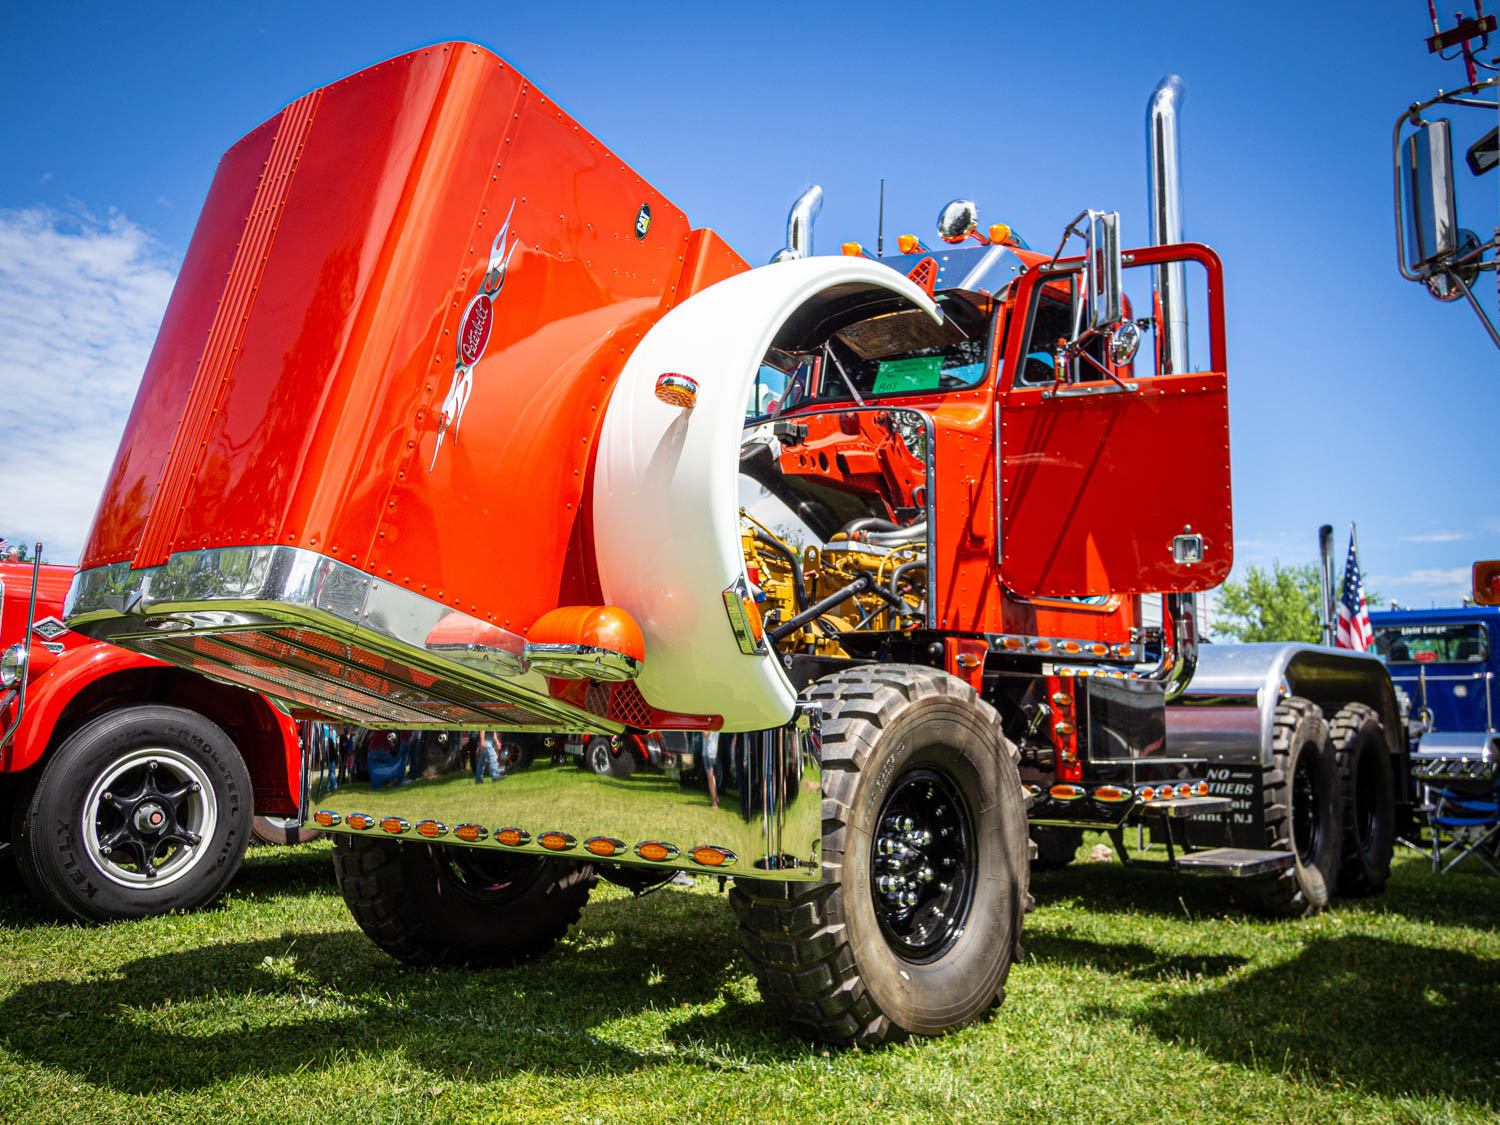 This 1982 Peterbilt 354 was a killer take on the big-rig theme, with three fat pumpkins putting power to all three axles, mega off-road tires, and a spotless engine bay.